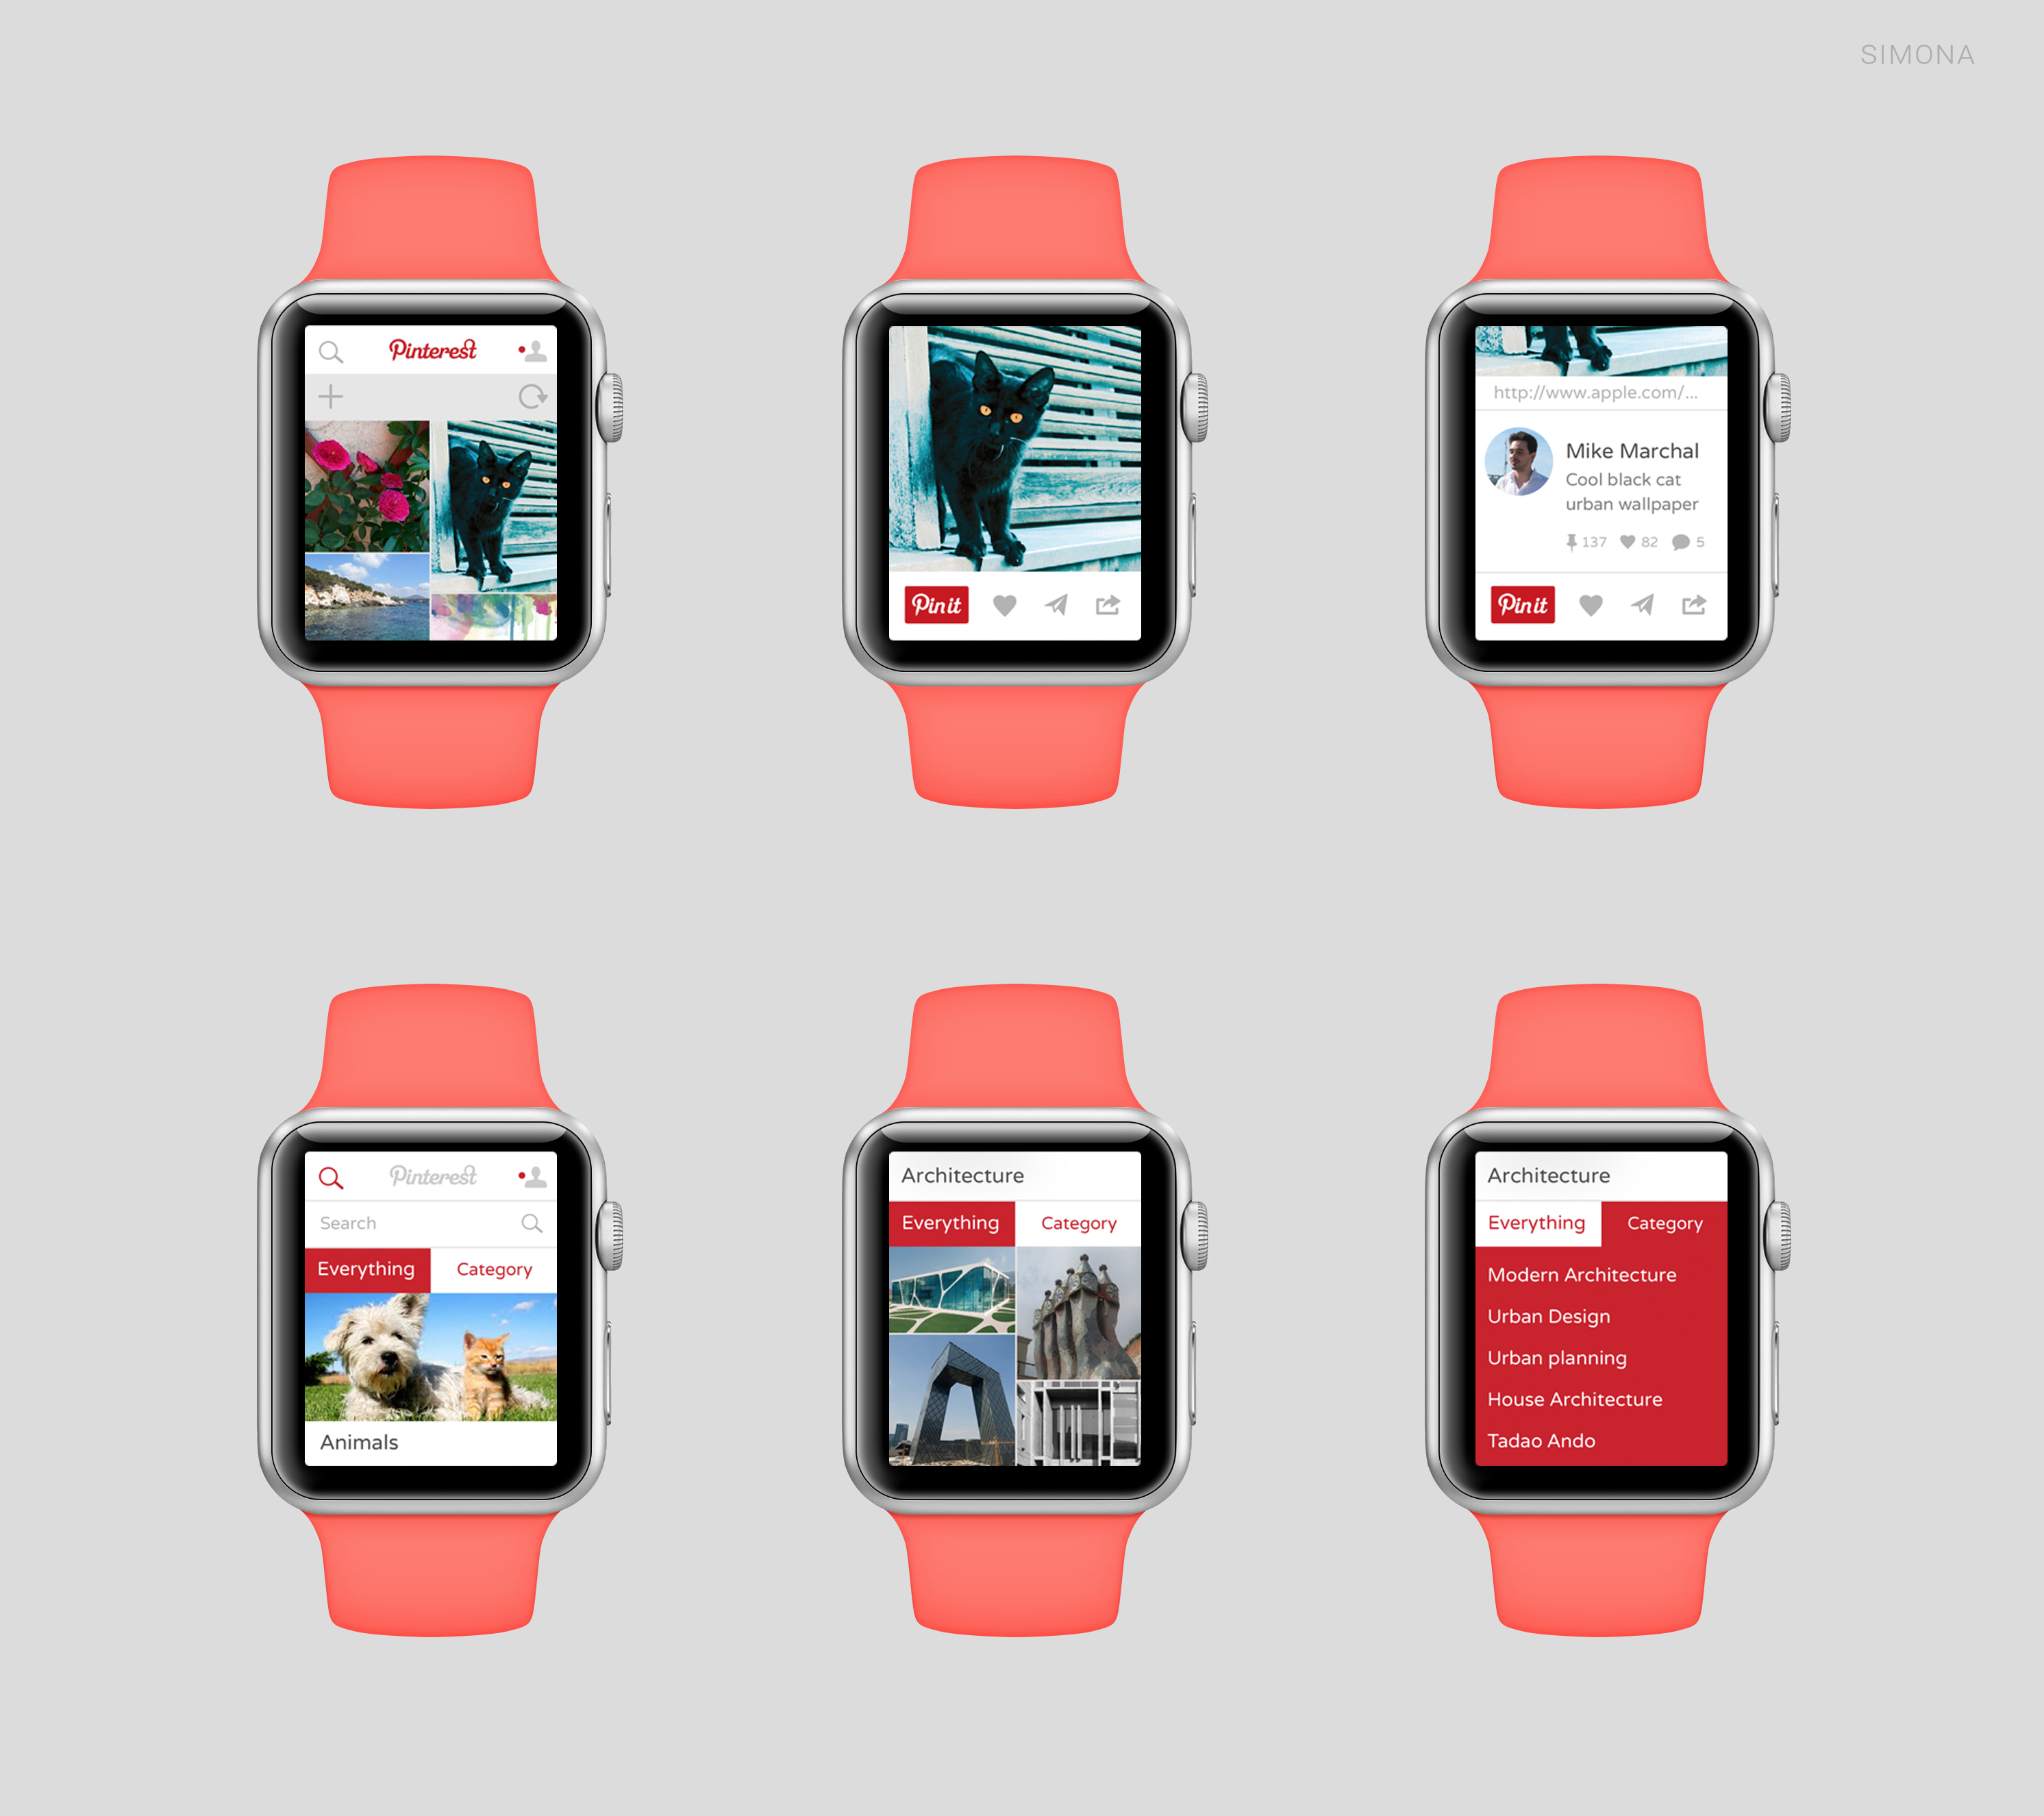 Conceito de app para o Applw Watch - Pinterest